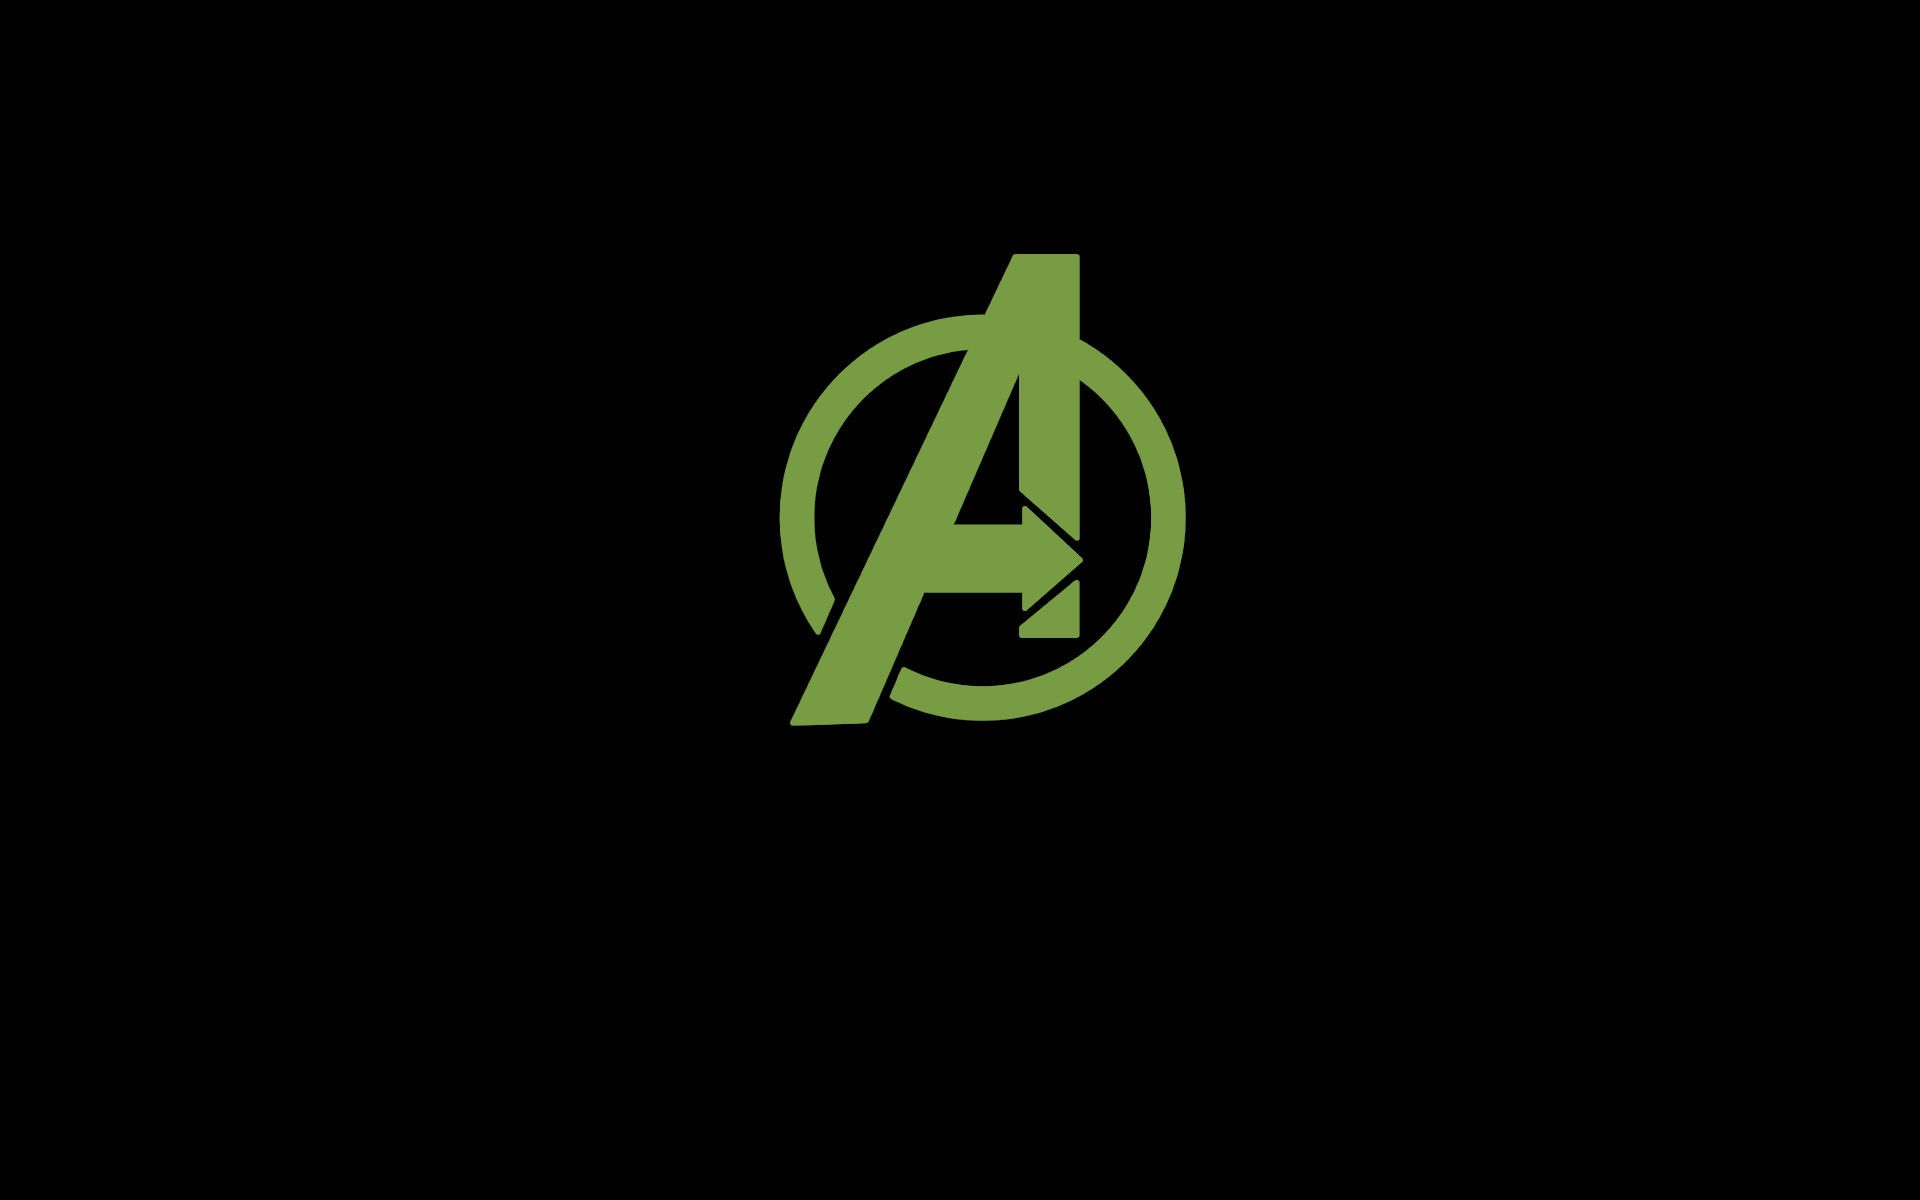 Avengers Logo Wallpapers - Top Free ...